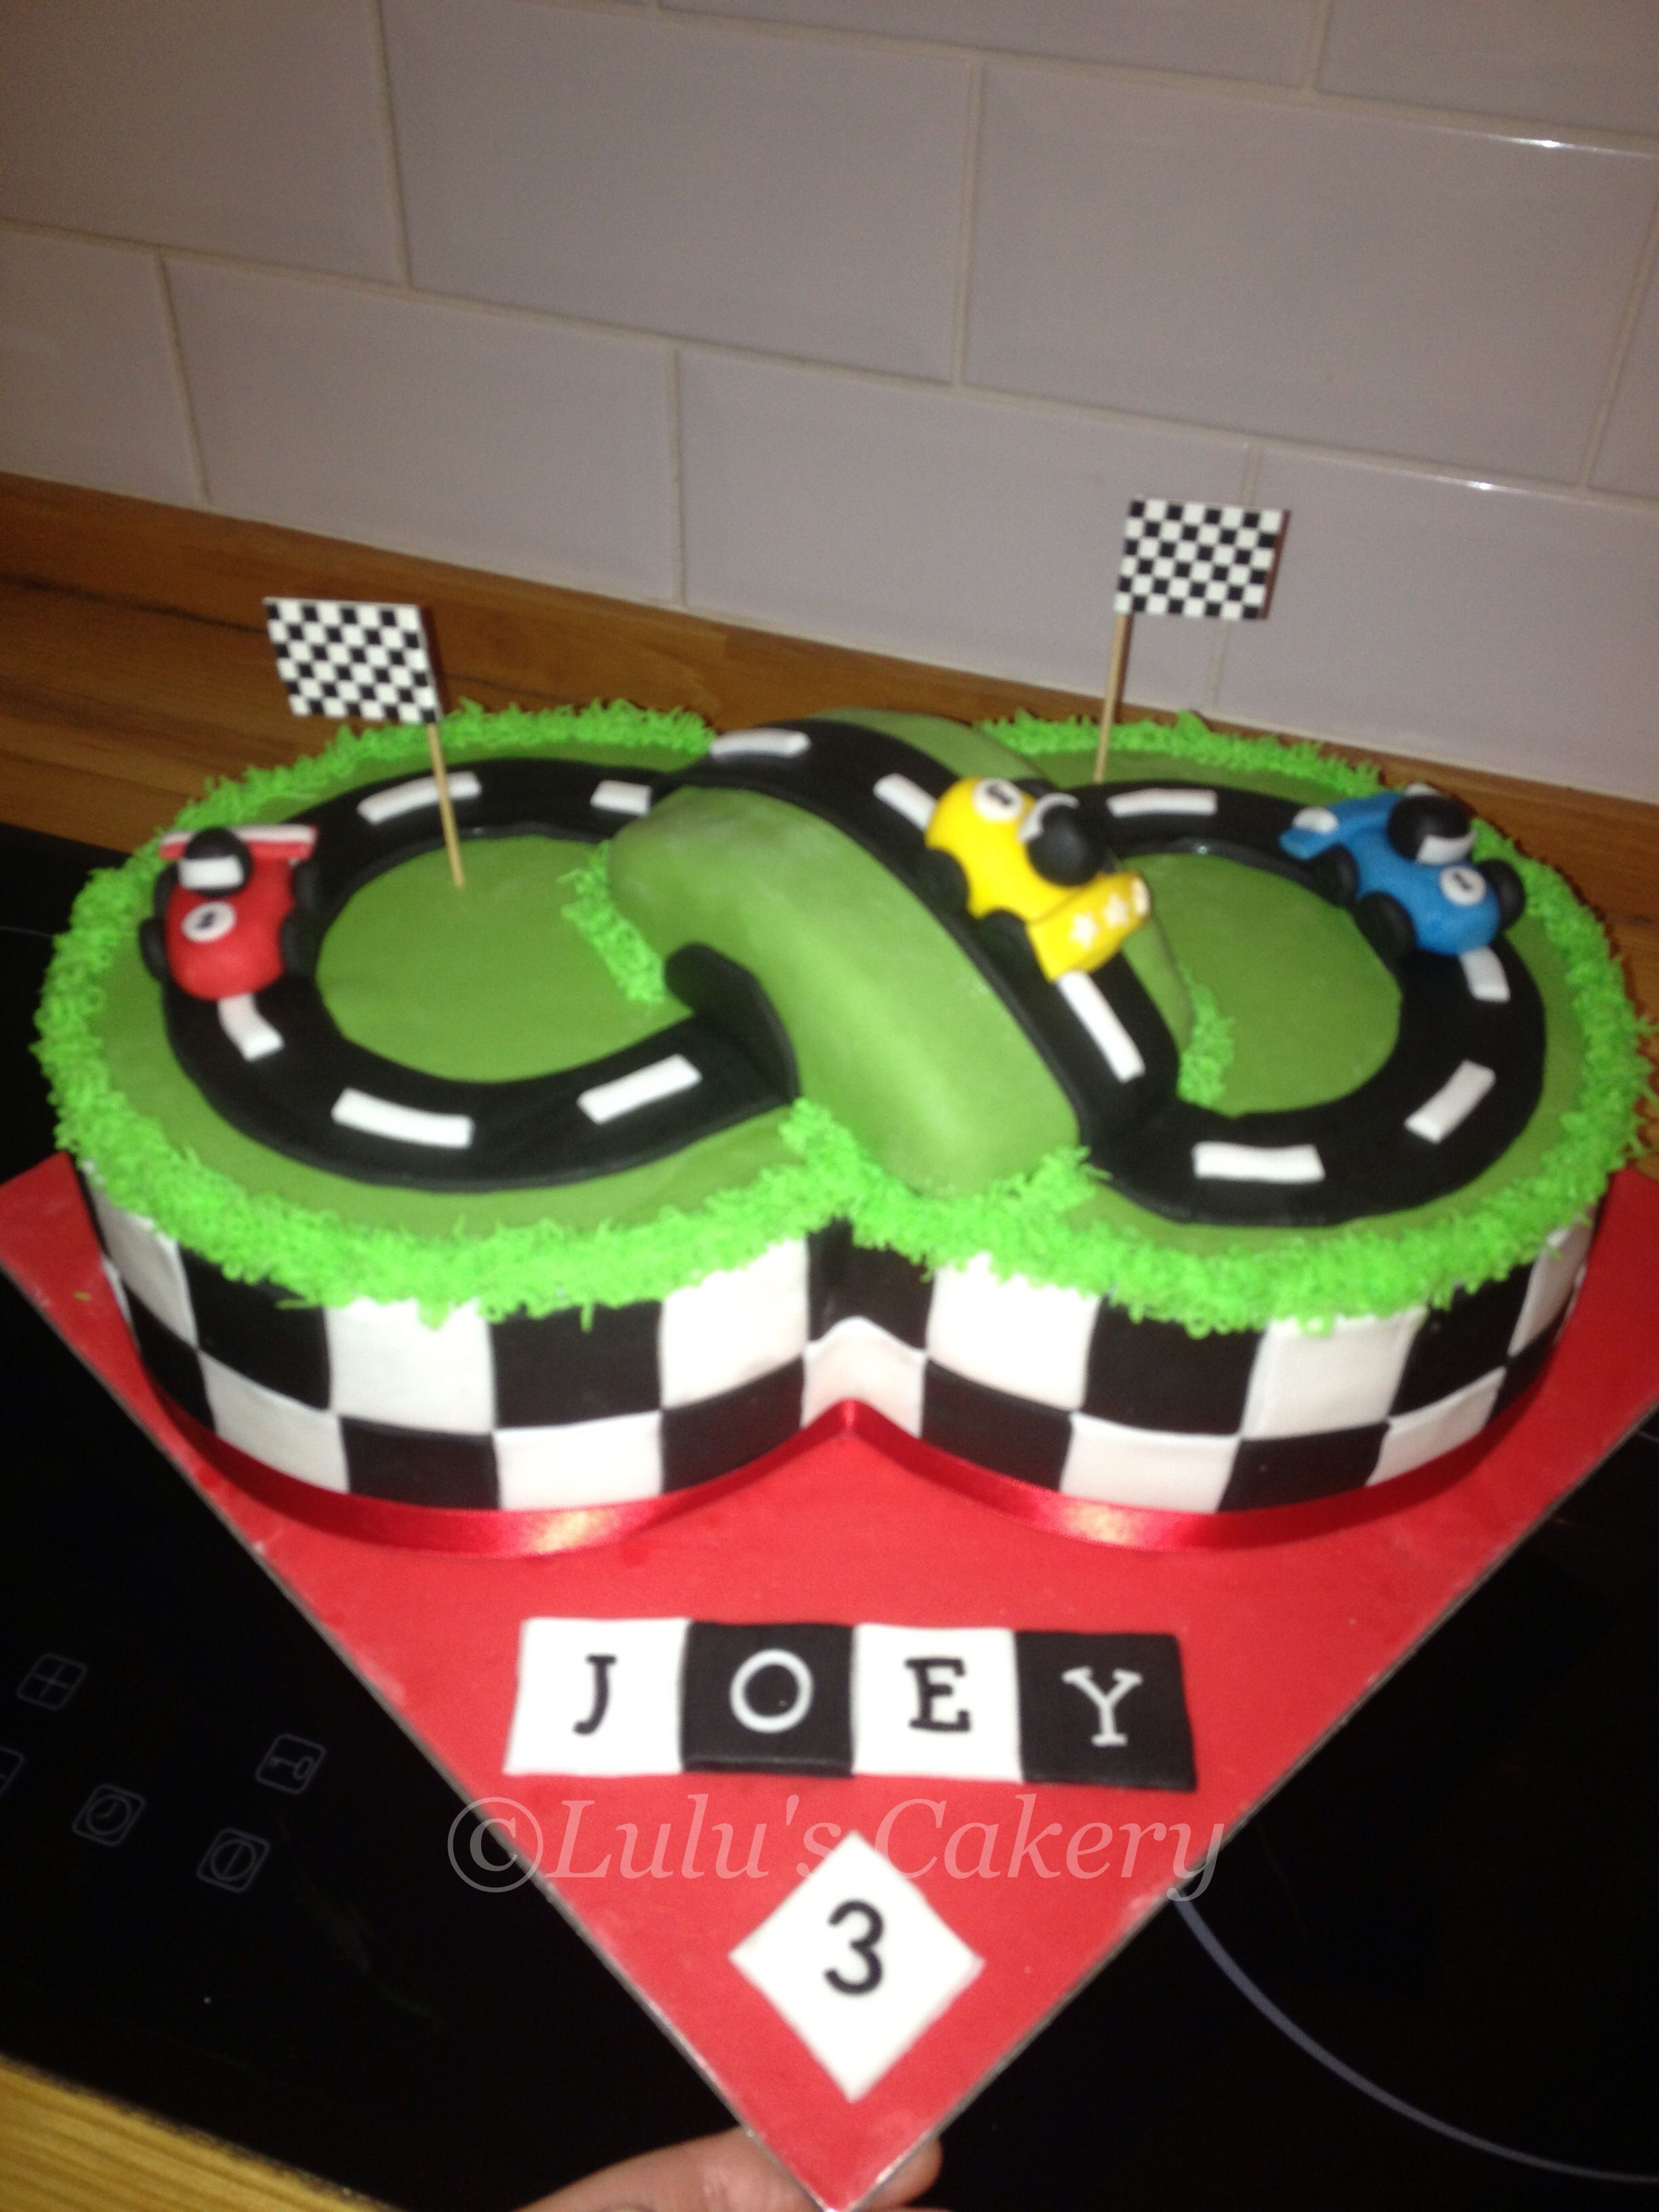 Half vanilla and half chocolate cake. Racing track cake for my little boys party x